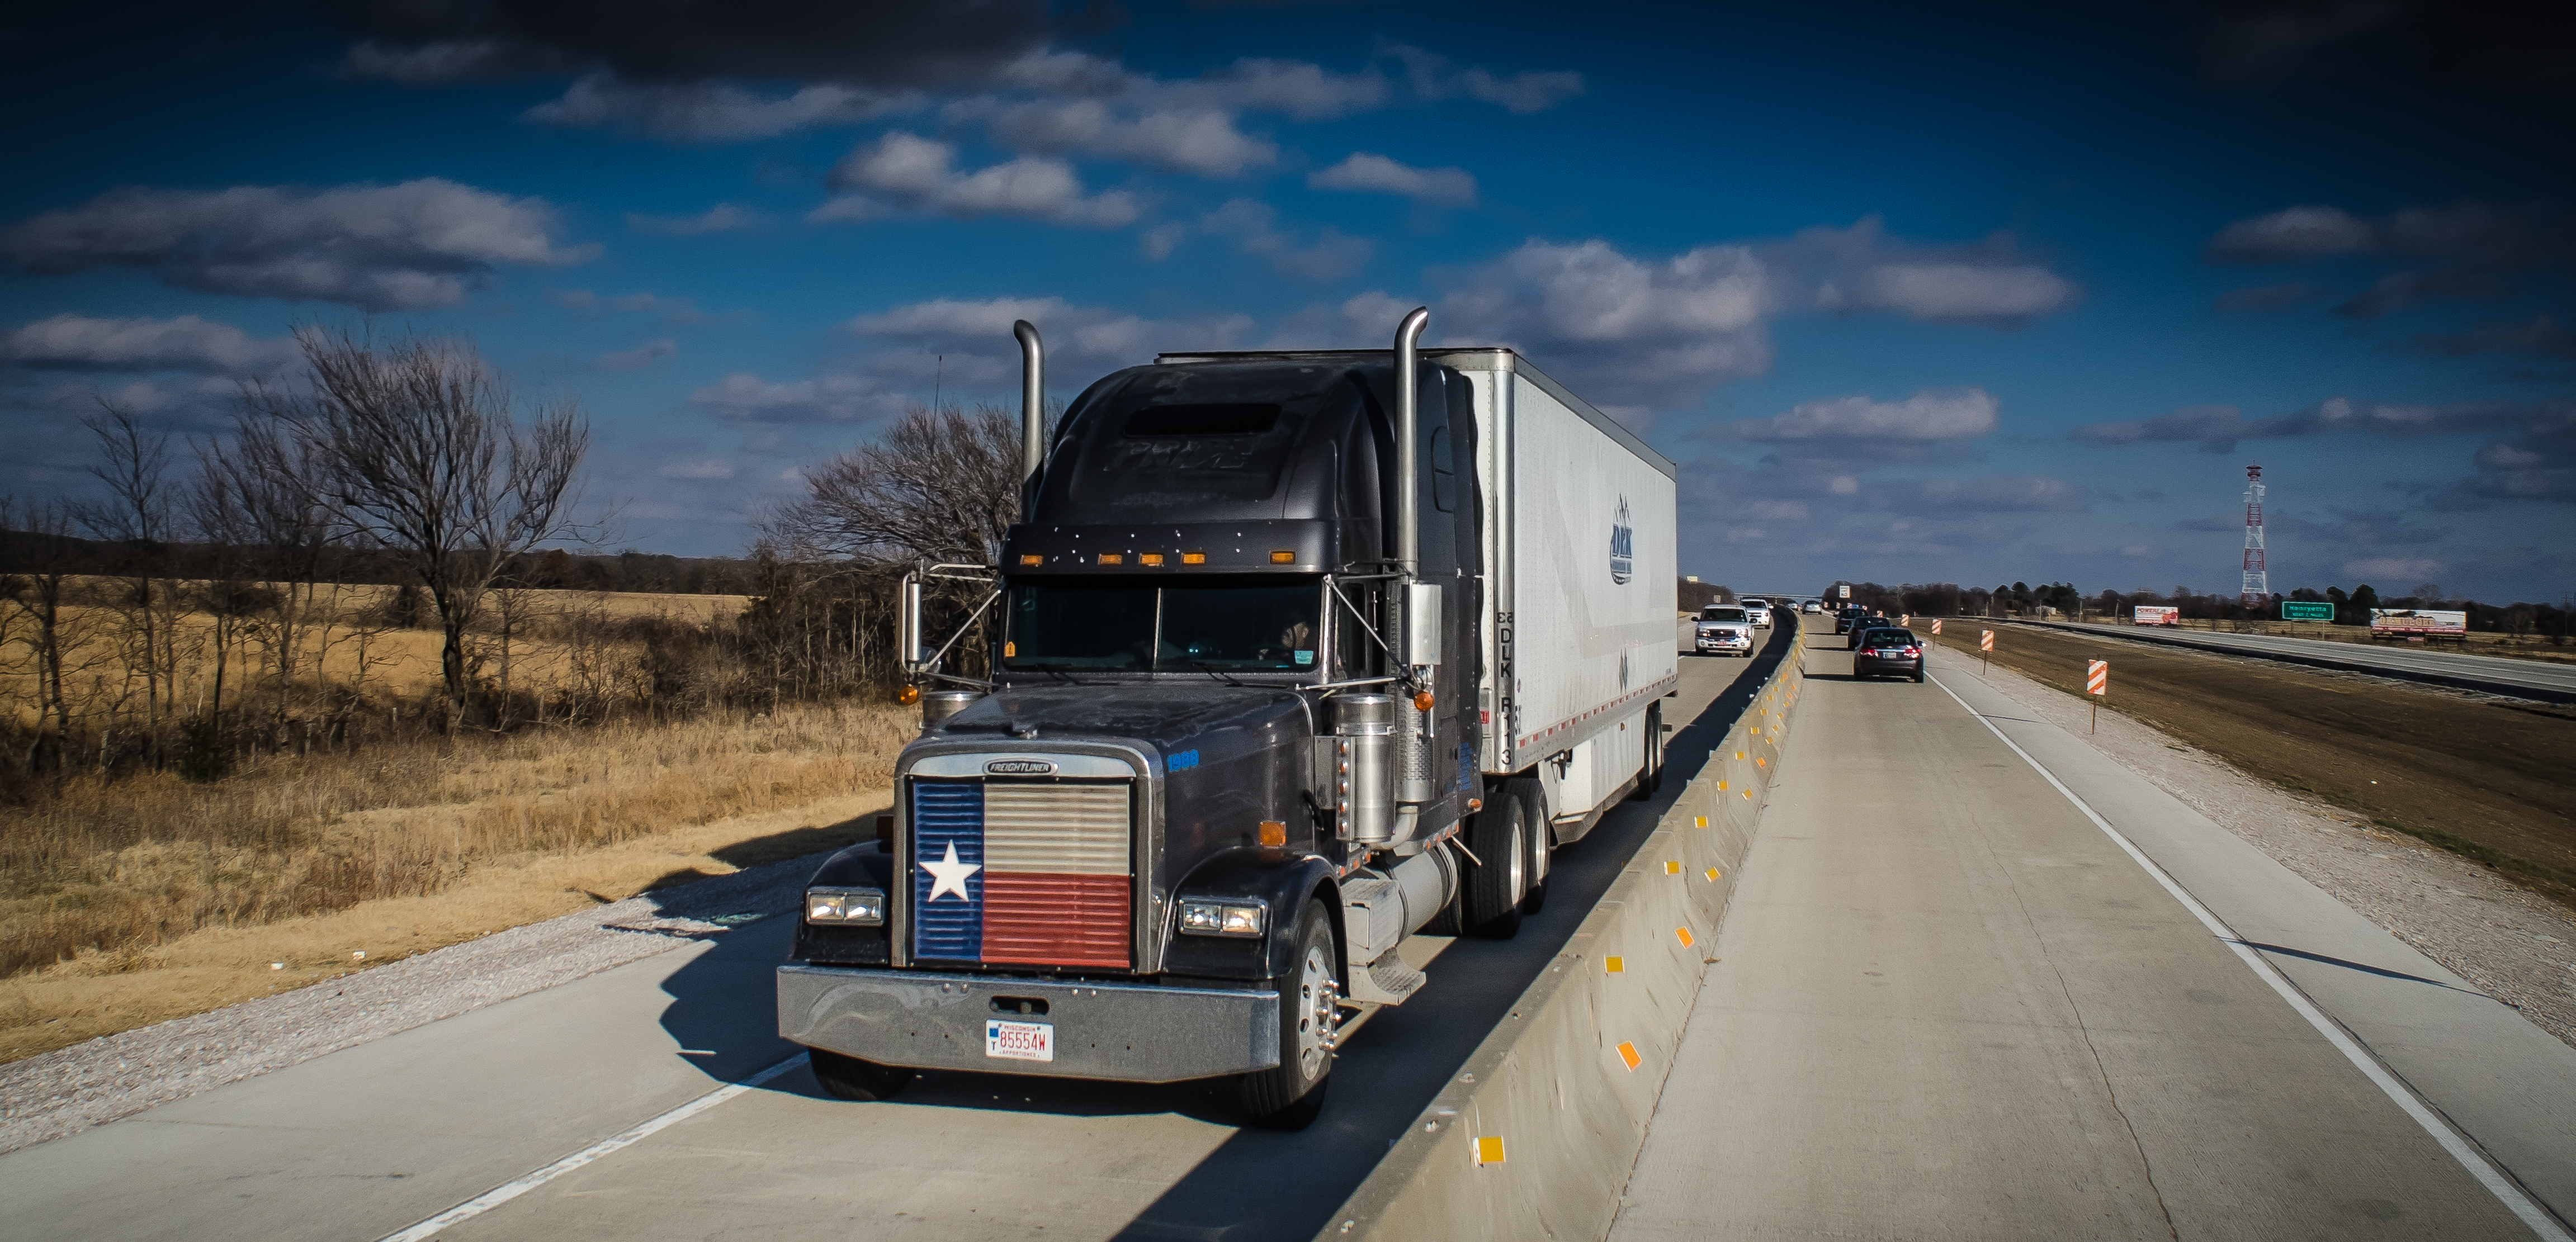 The Daily Dash: Truck driver issues in Texas, Louisiana